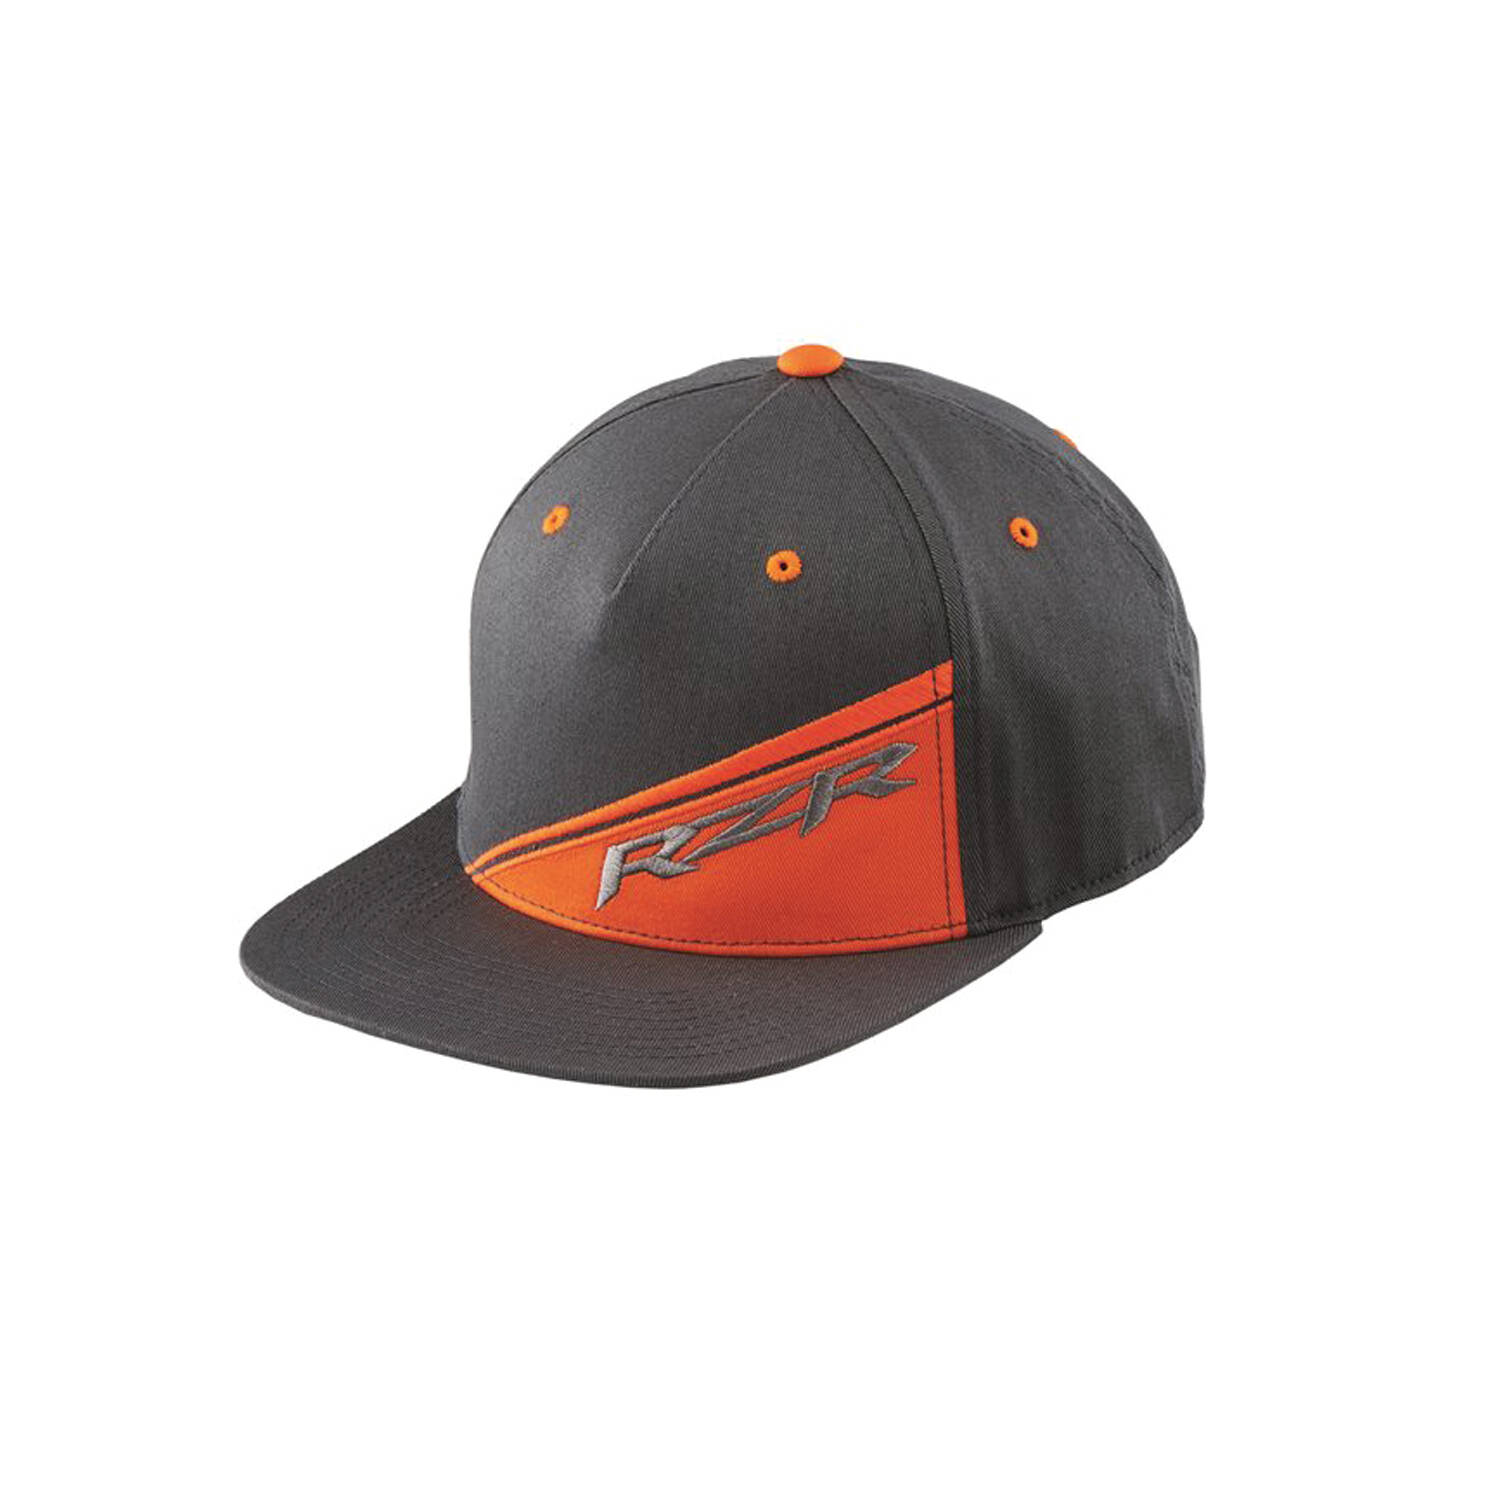 1287b06535ac9 Men s Flexfit Flatbill SoCal Hat with Gray RZR® Logo